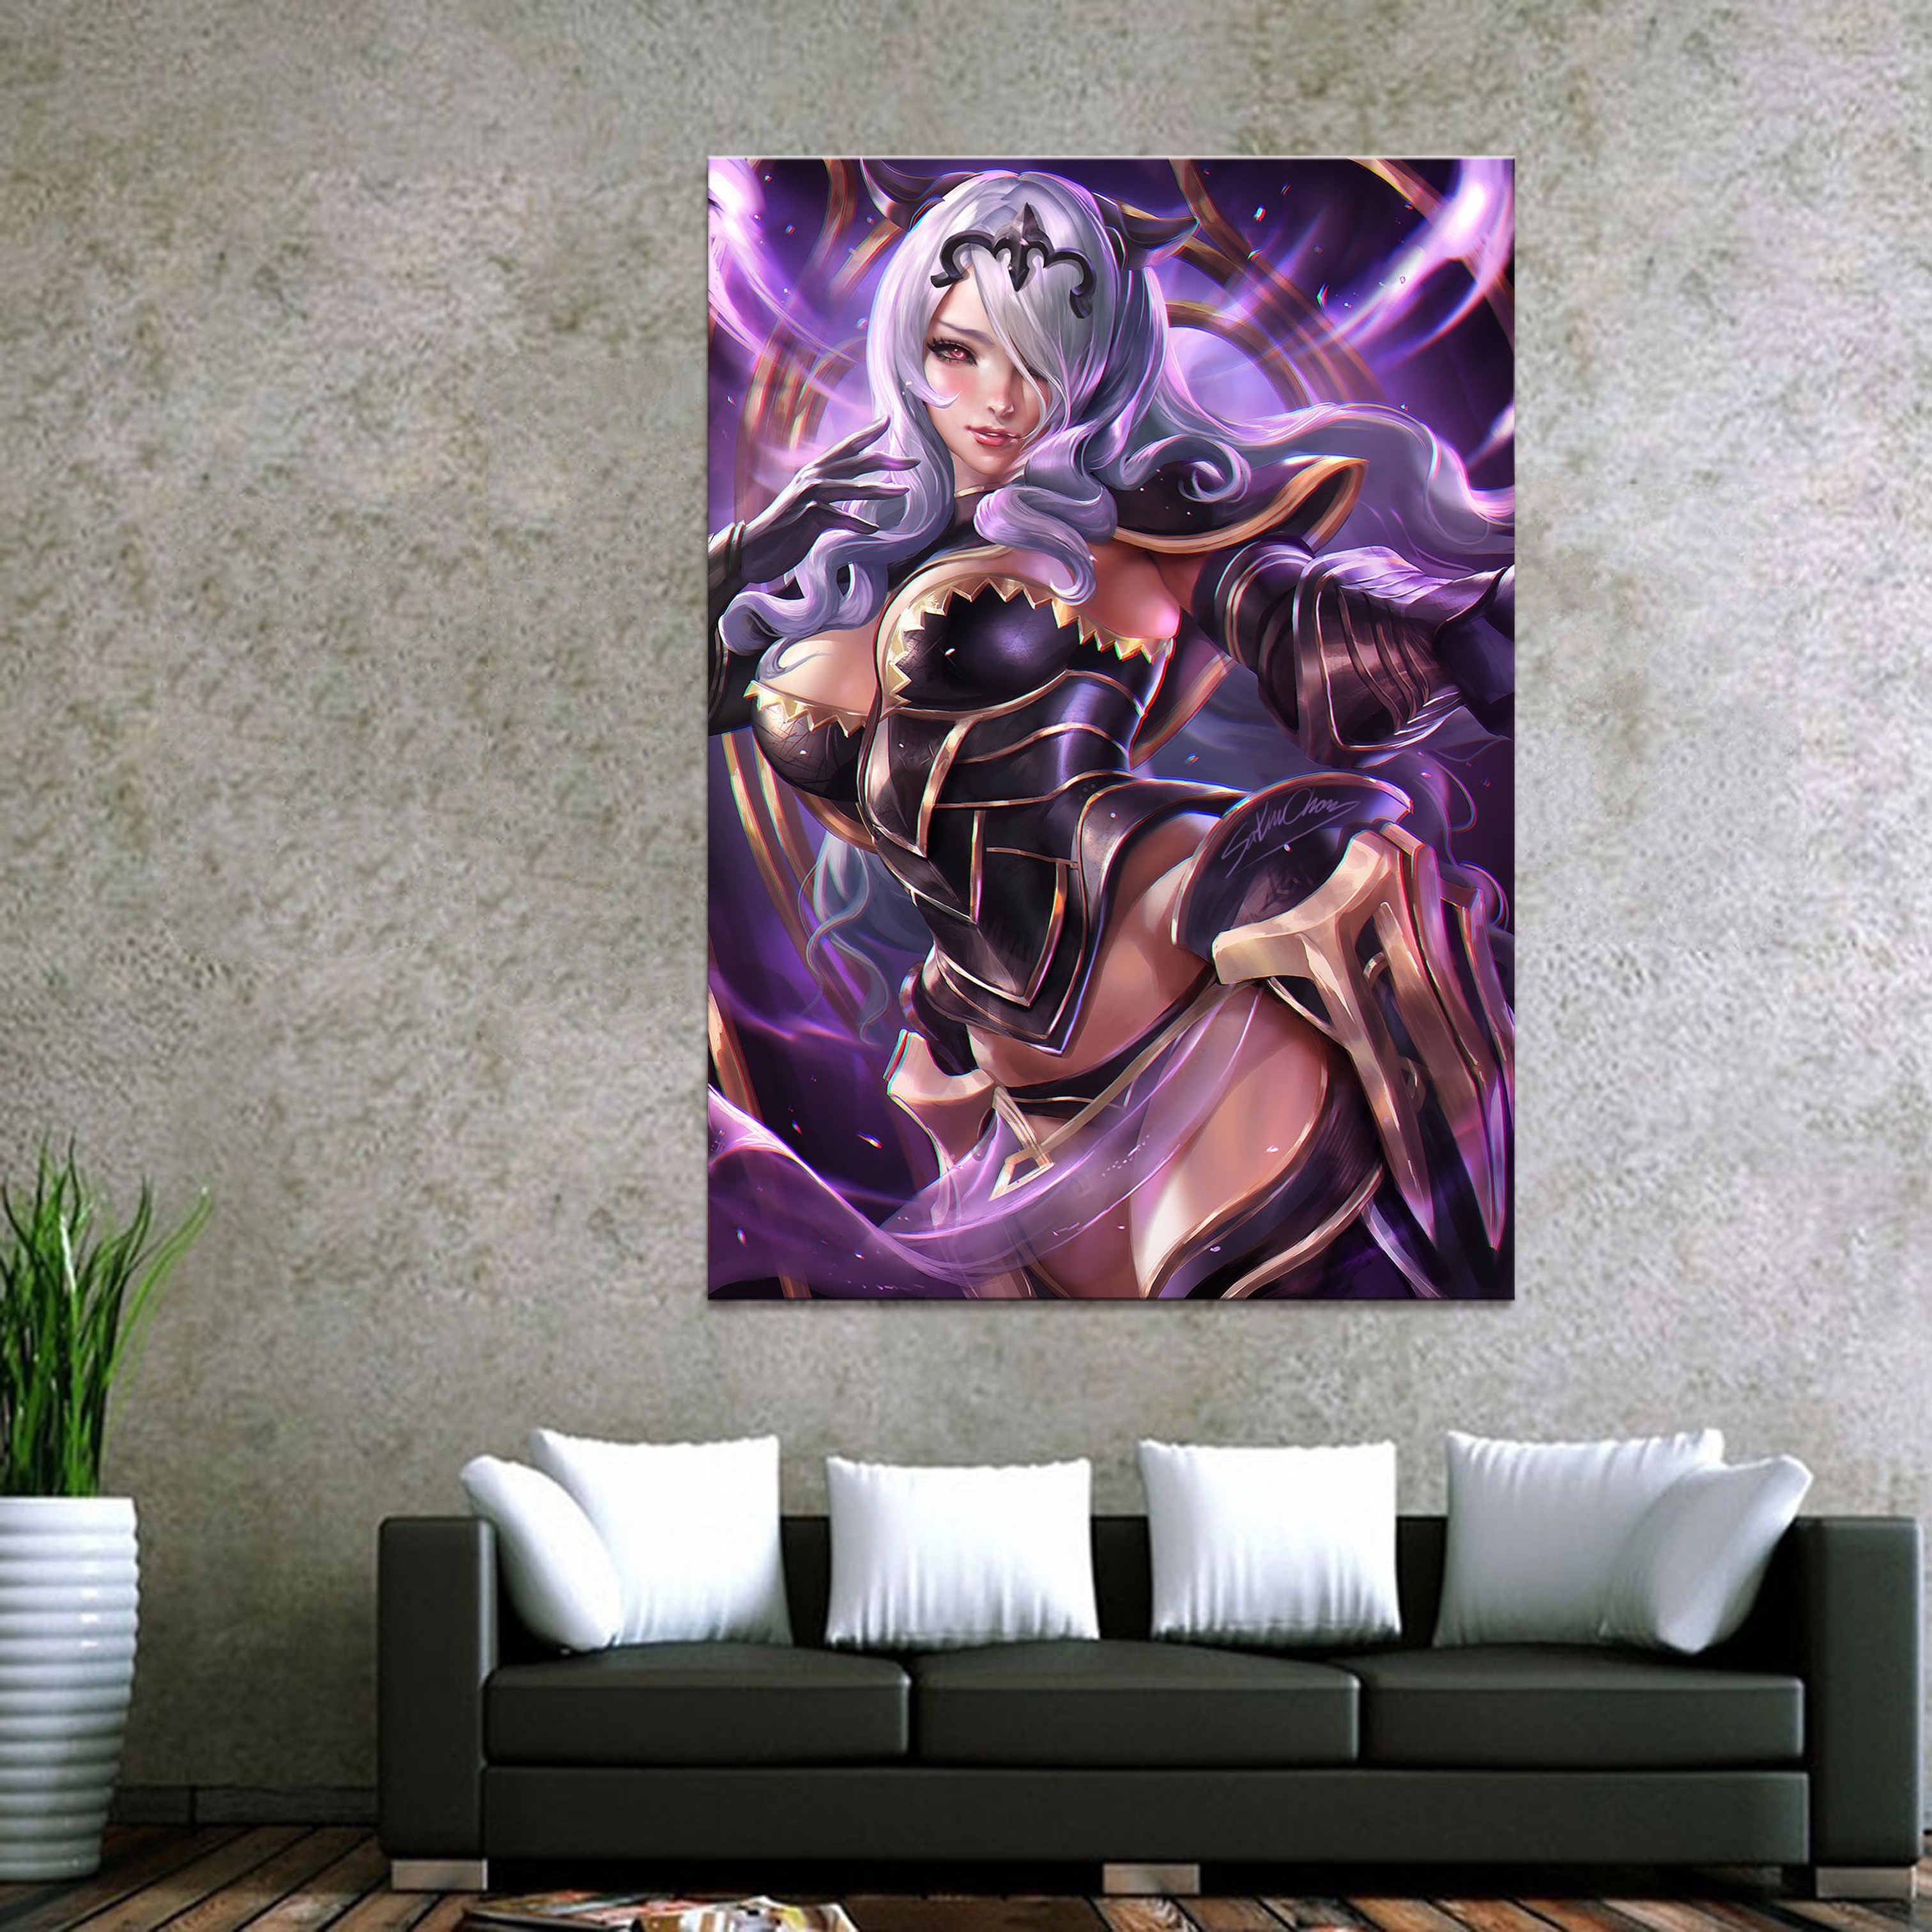 Home Decor Canvas Camilla fire emblem Game 1 Piece Anime Sexy girl Art Poster Prints Picture Wall Decoration Painting wholesale image